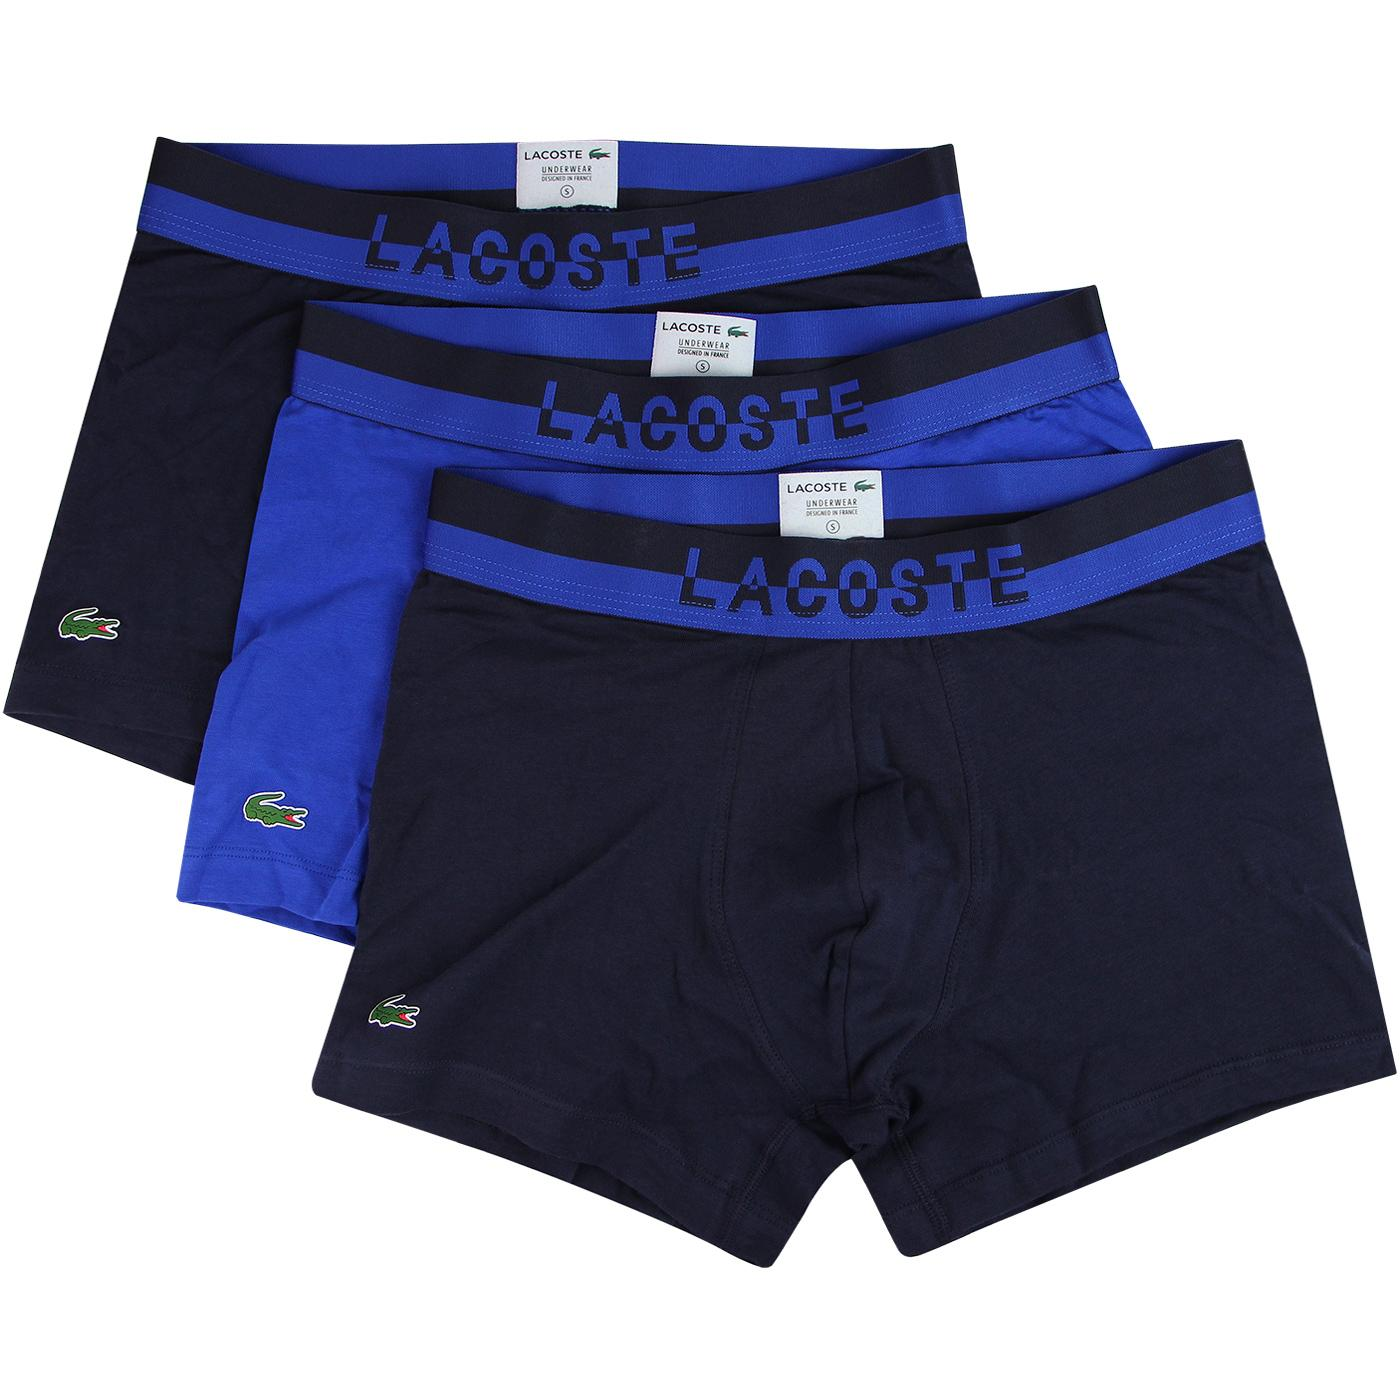 + LACOSTE Men's Contrast Stripe 3 Pack Trunks BLUE